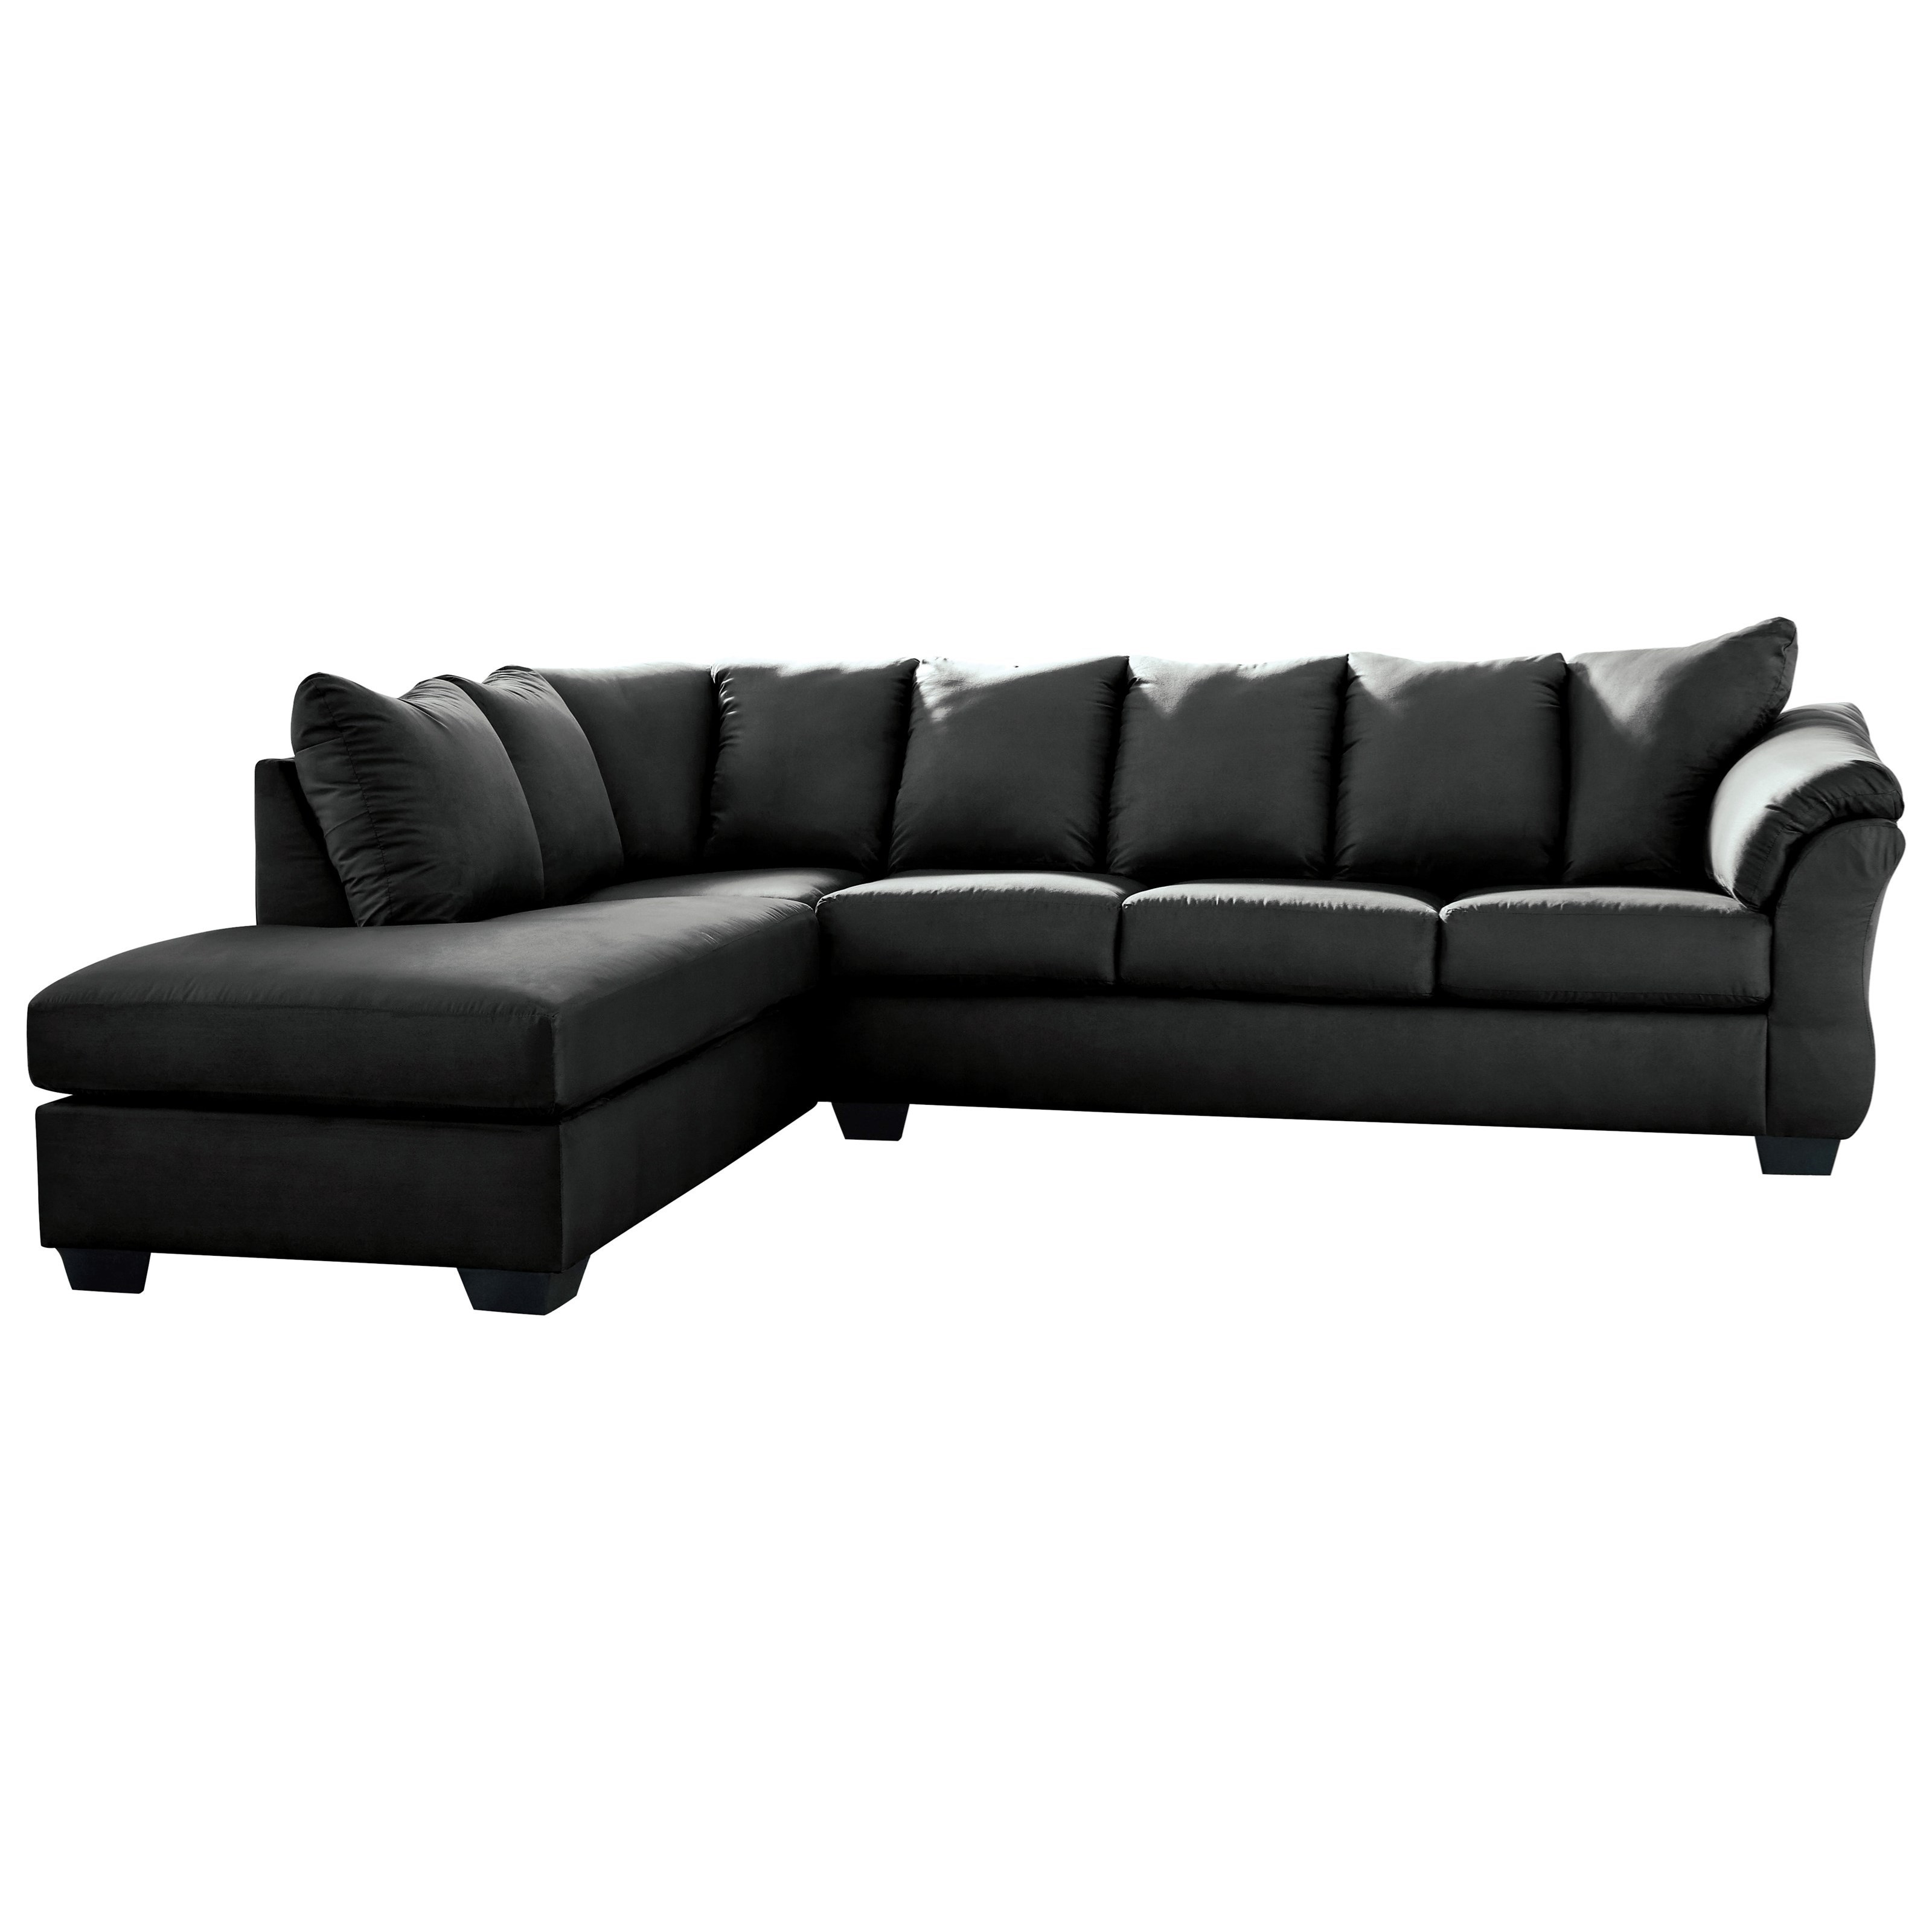 Darcy - Black Contemporary Sectional Sleeper Sofa with Left Chaise by  Ashley Signature Design at Dunk & Bright Furniture